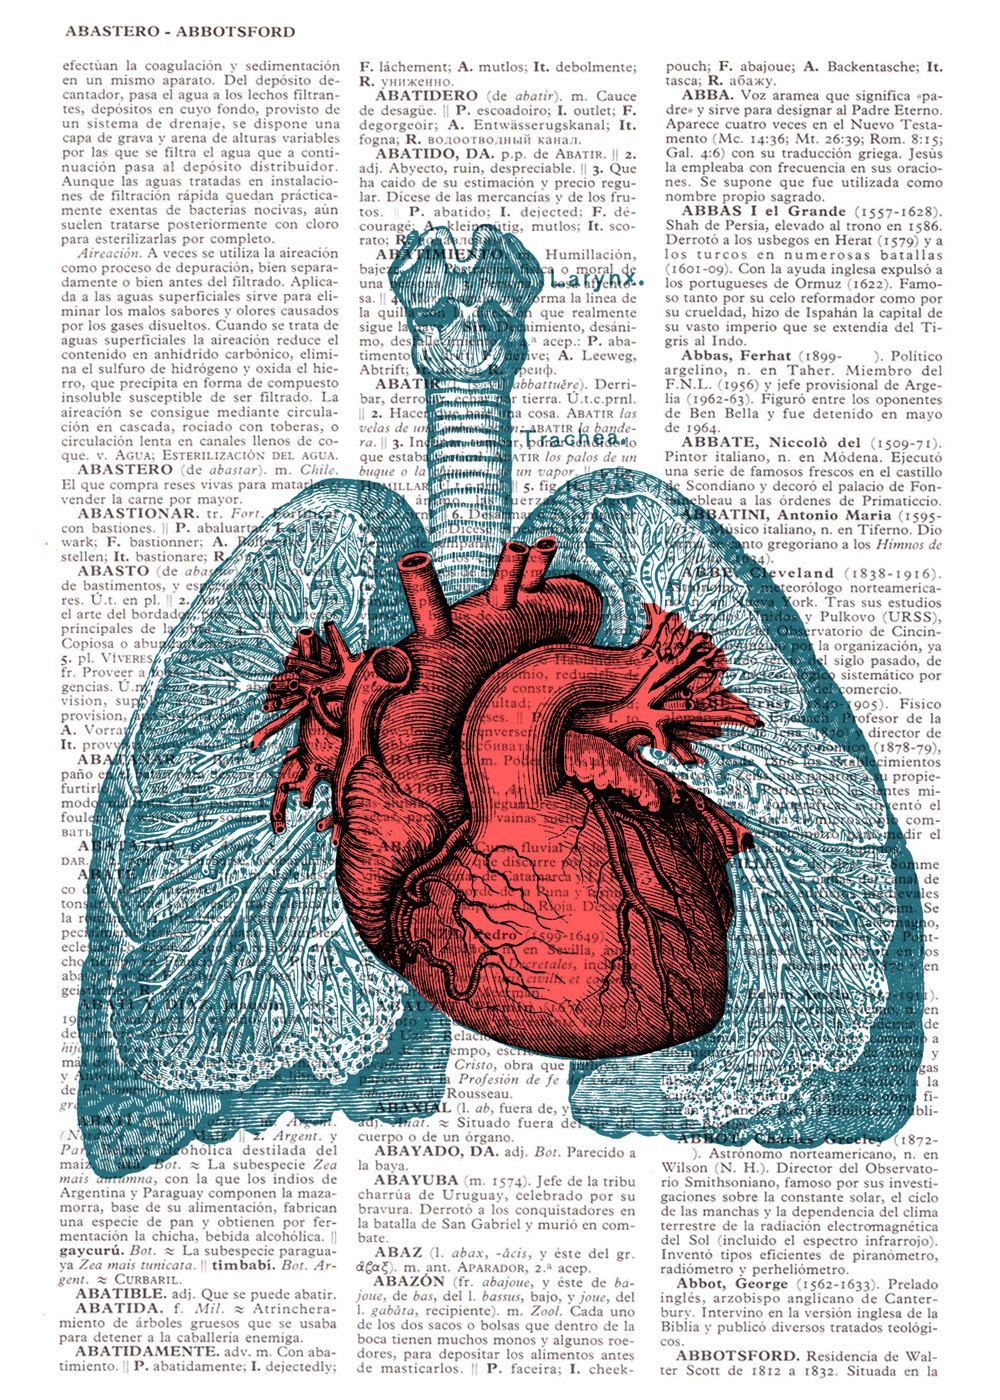 Heart And Lungs Anatomy Book Page Print On Vintage Encyclopedic Page